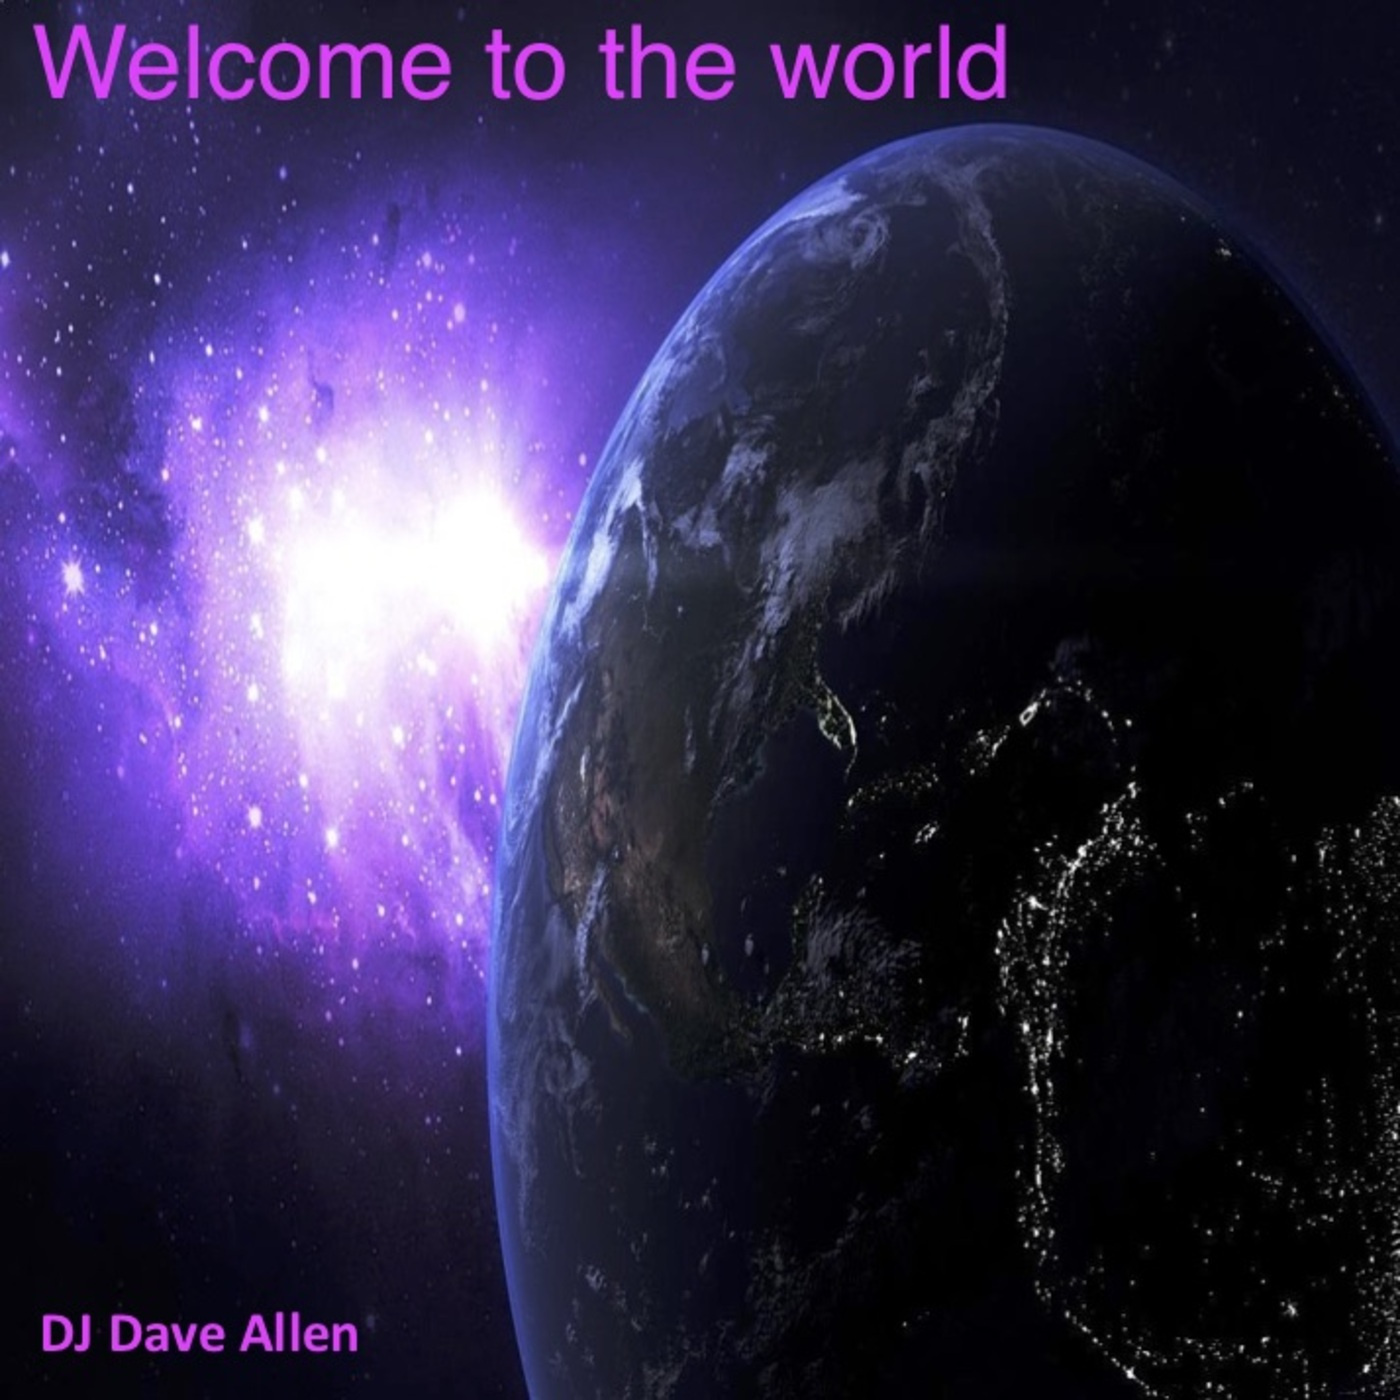 Welcome To The World DJ Dave Allen's podcast